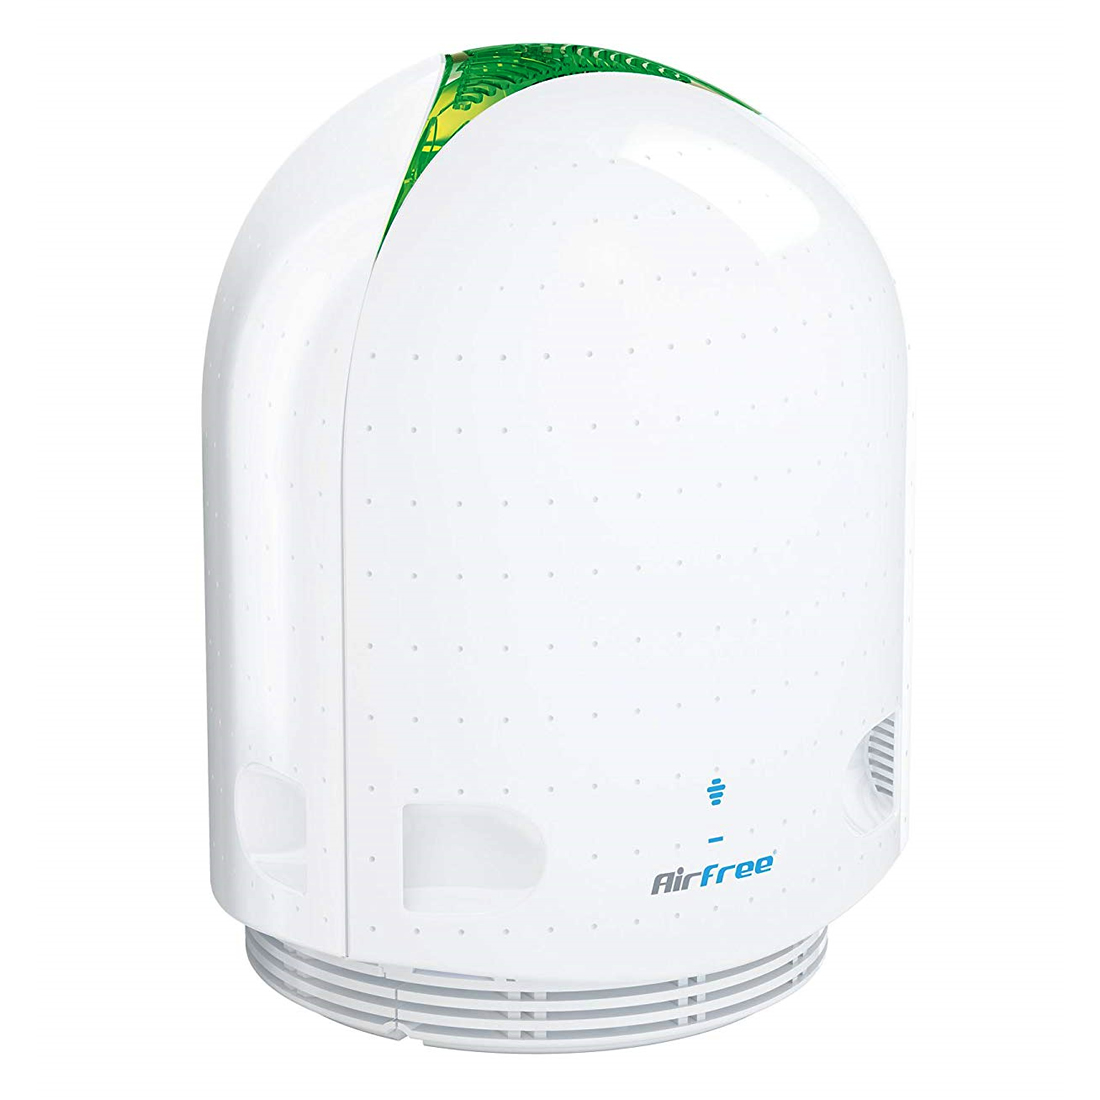 Image of 24 m² Room Capacity Domestic Air Purifier